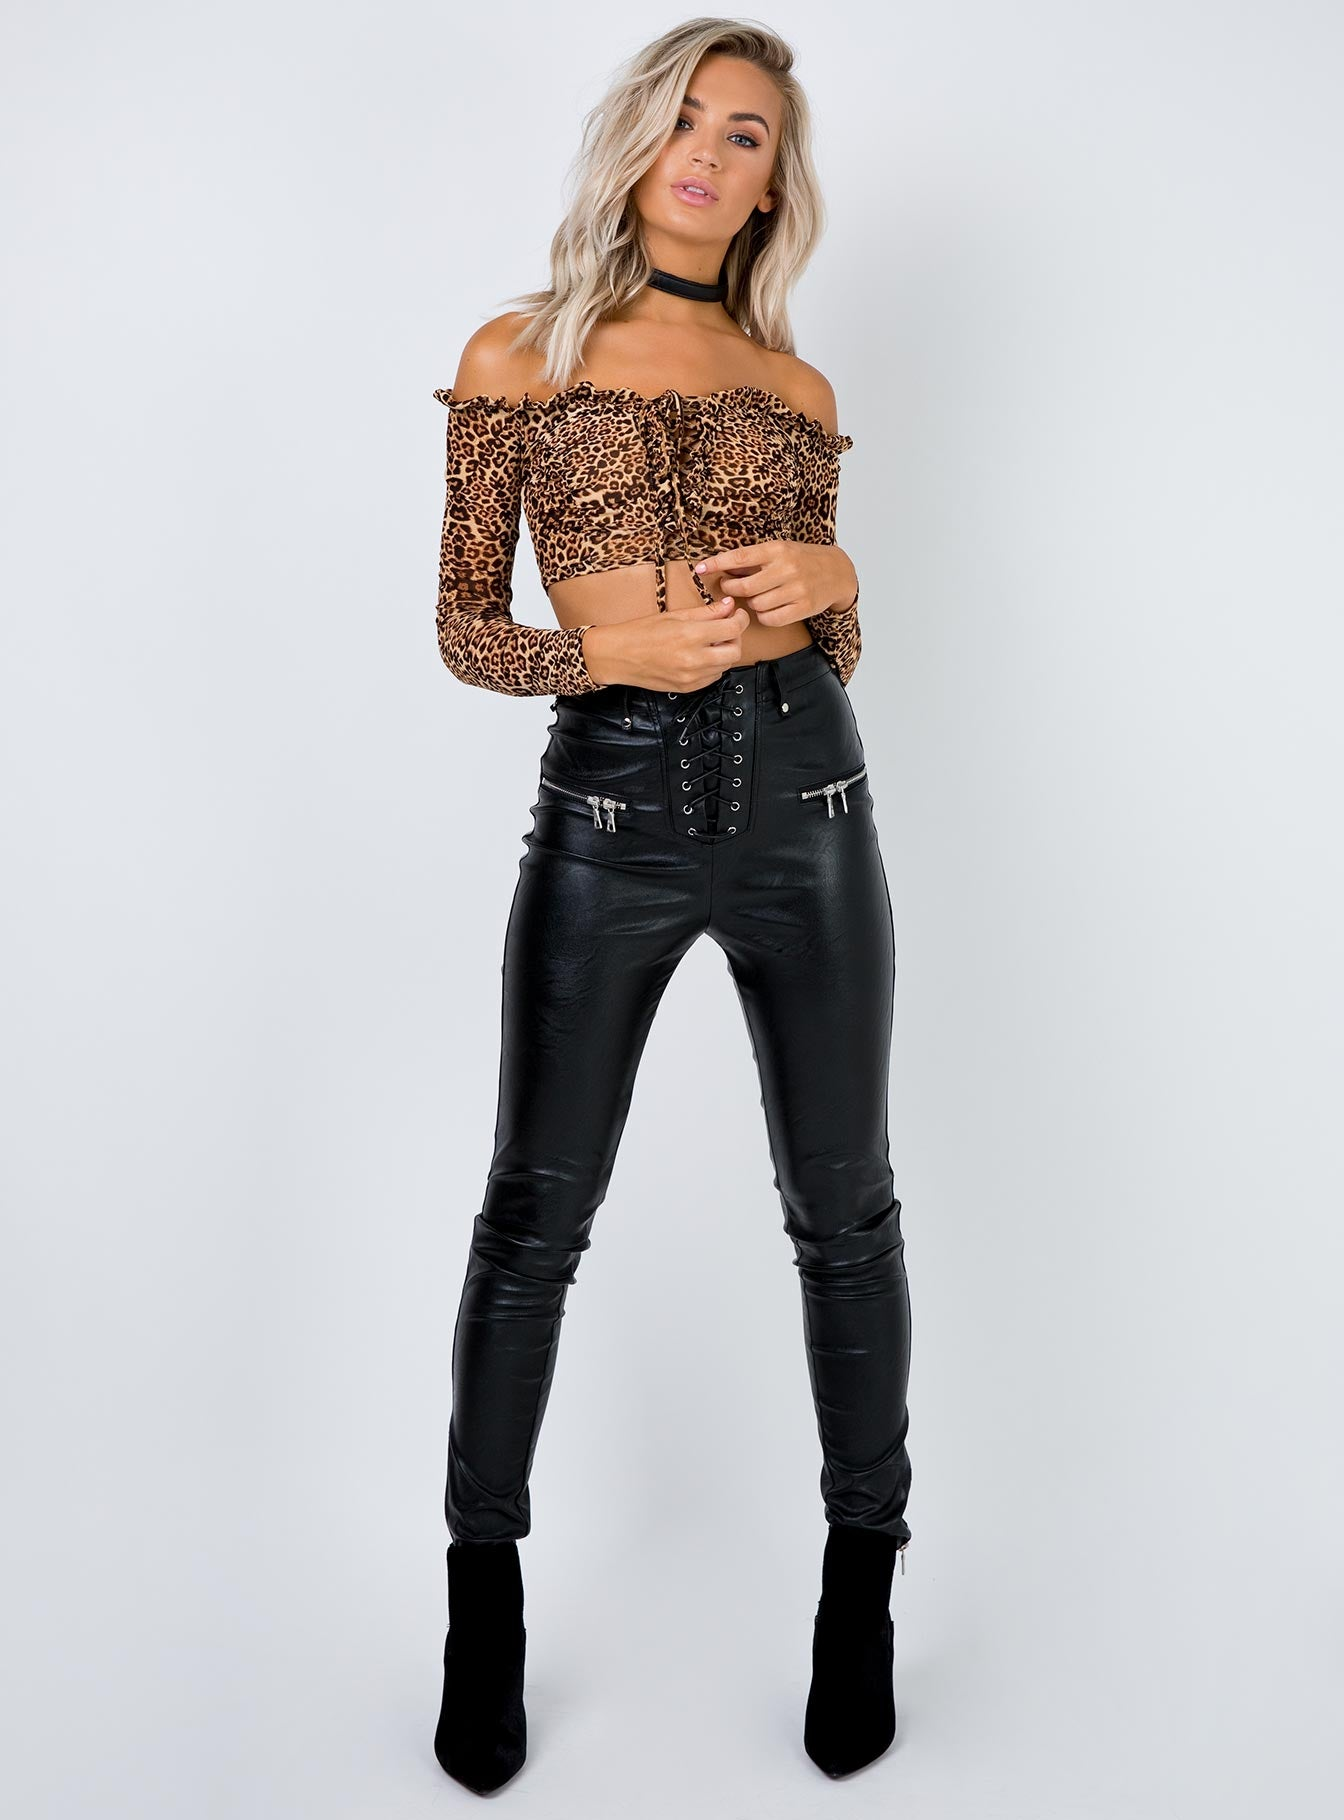 Explosive Punk Crop Top Leopard